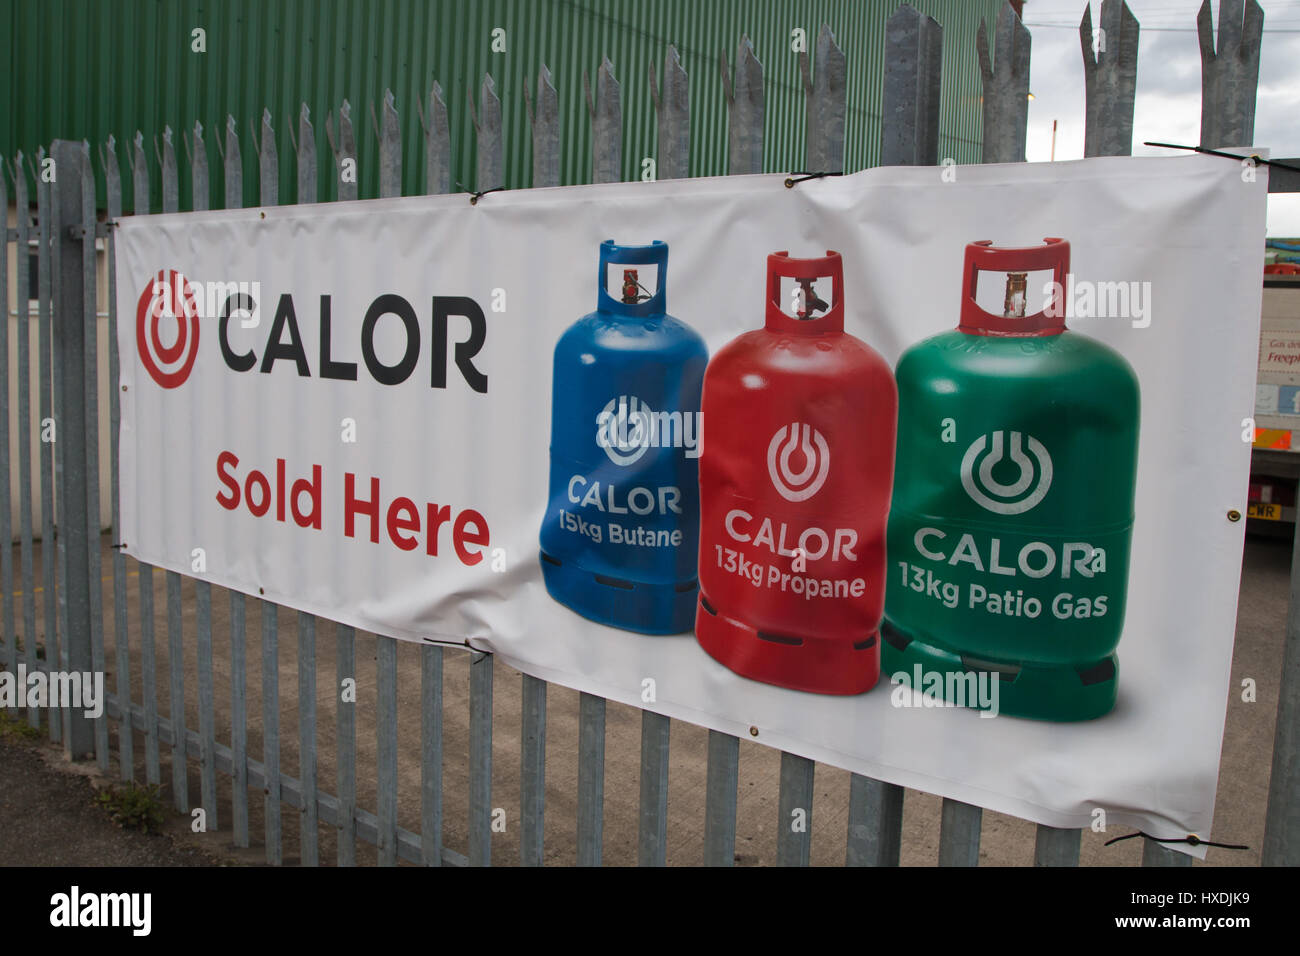 CALOR GAS: An advertising sign stating 'CALOR Sold Here' - Stock Image